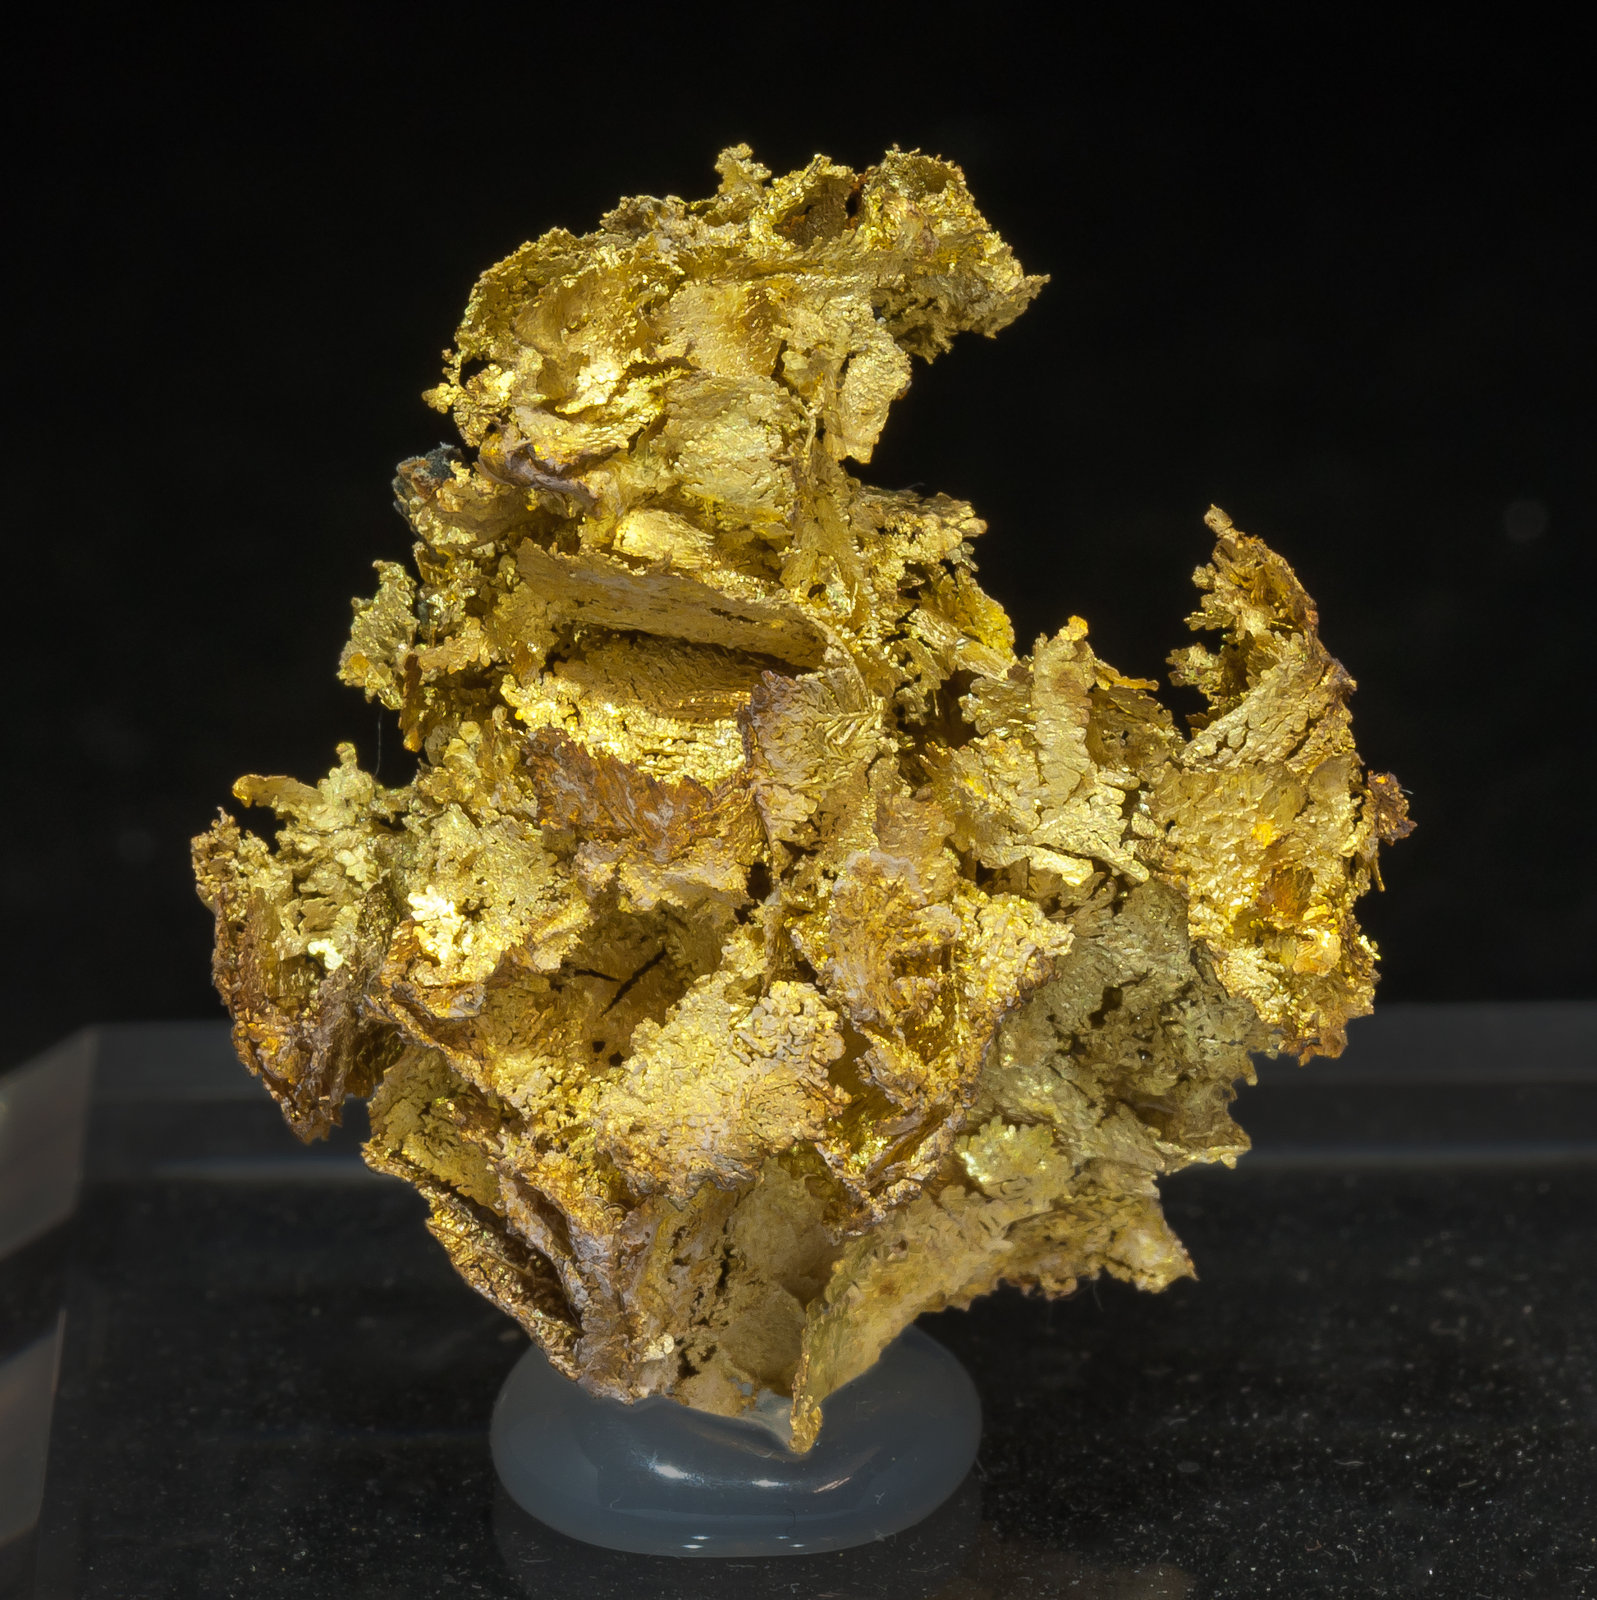 specimens/s_imagesAM3/Gold-TR16AM3f.jpg